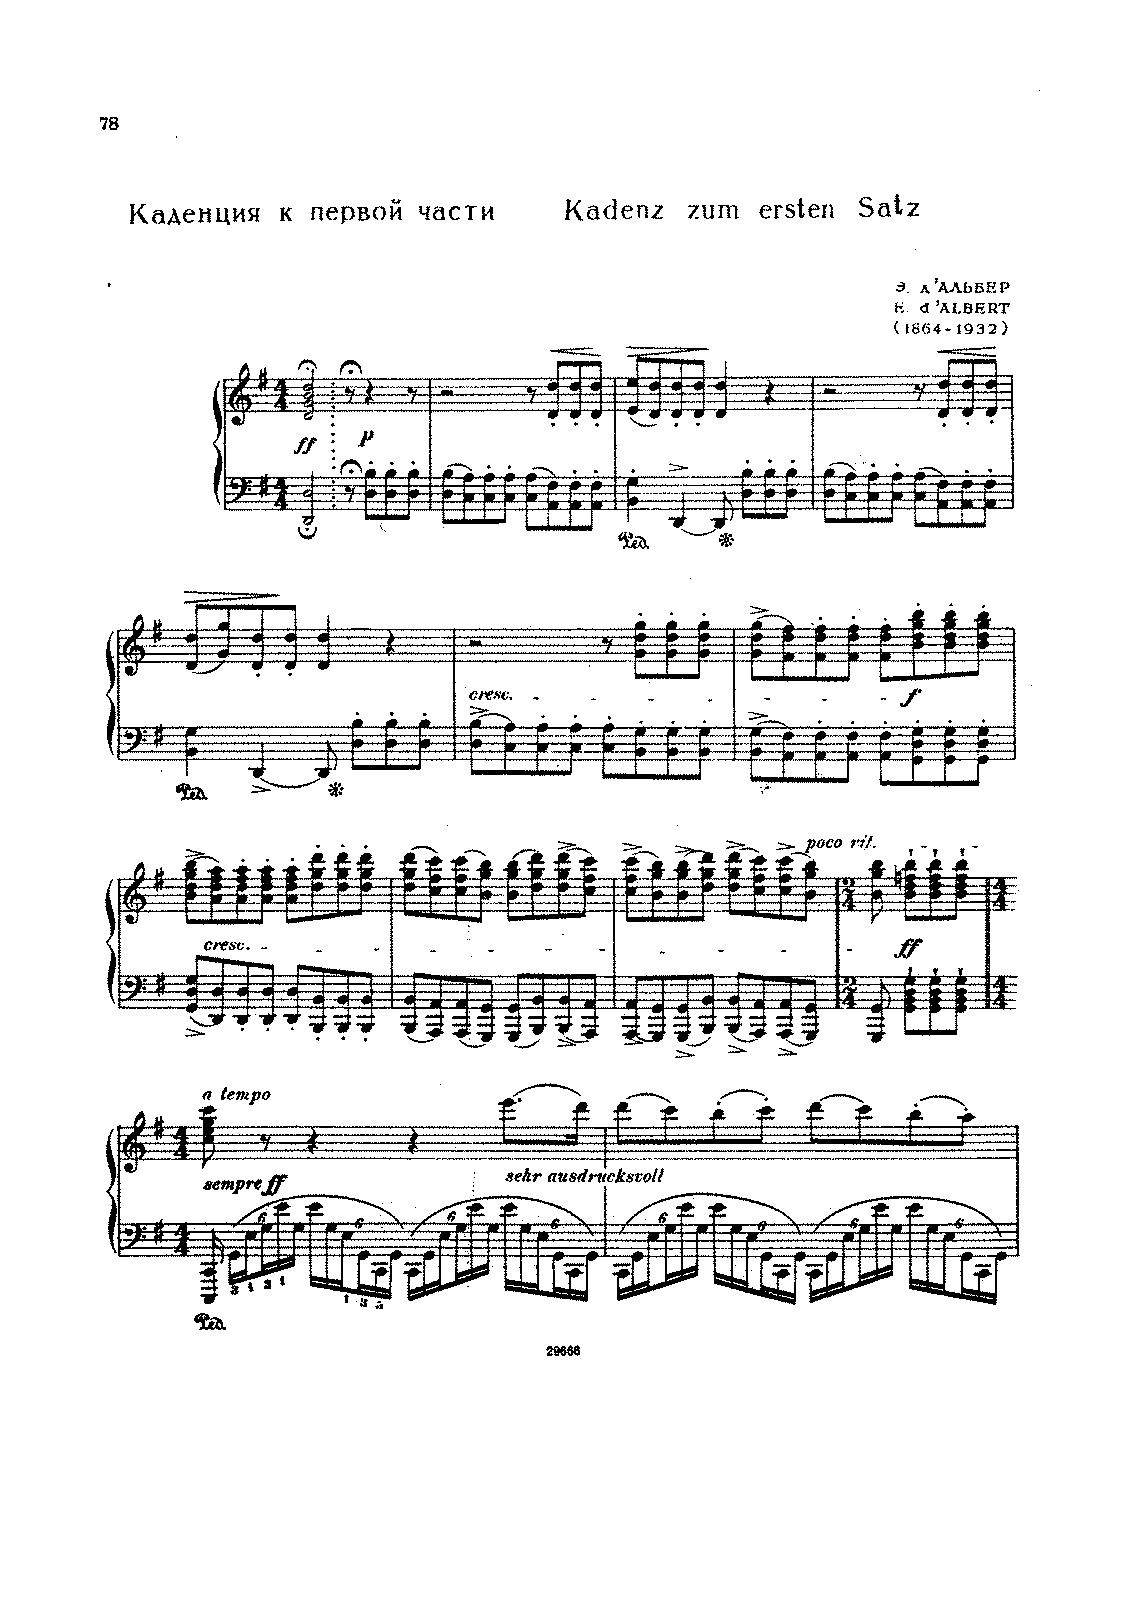 Beethoven-d'Albert Cadenza for Concerto -4 in G.pdf